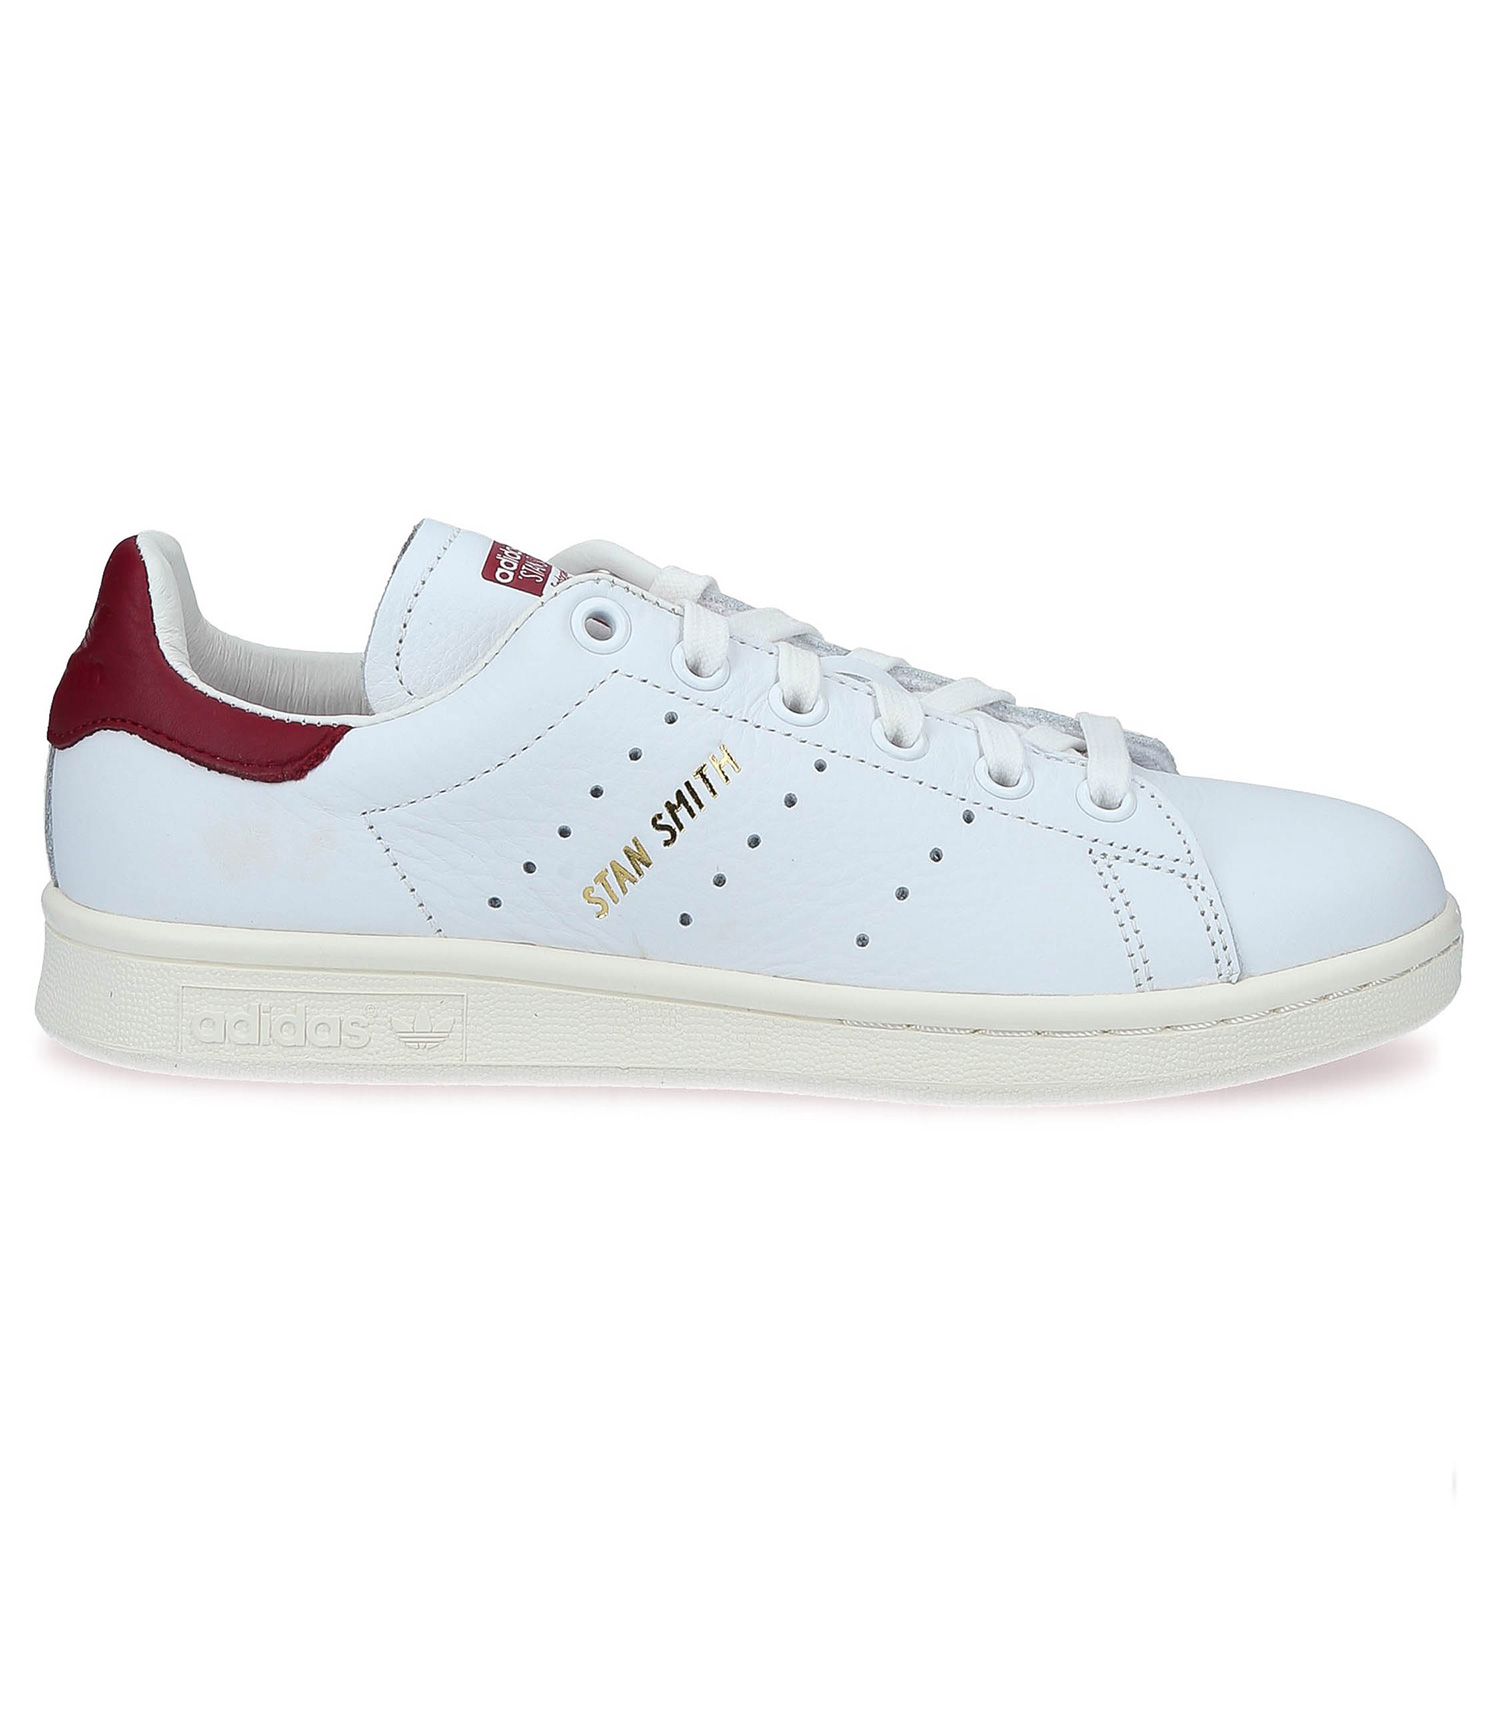 faire les courses pour grande remise super pas cher Sneakers Stan Smith Blanc/Bordeaux adidas Originals - Jane de Boy